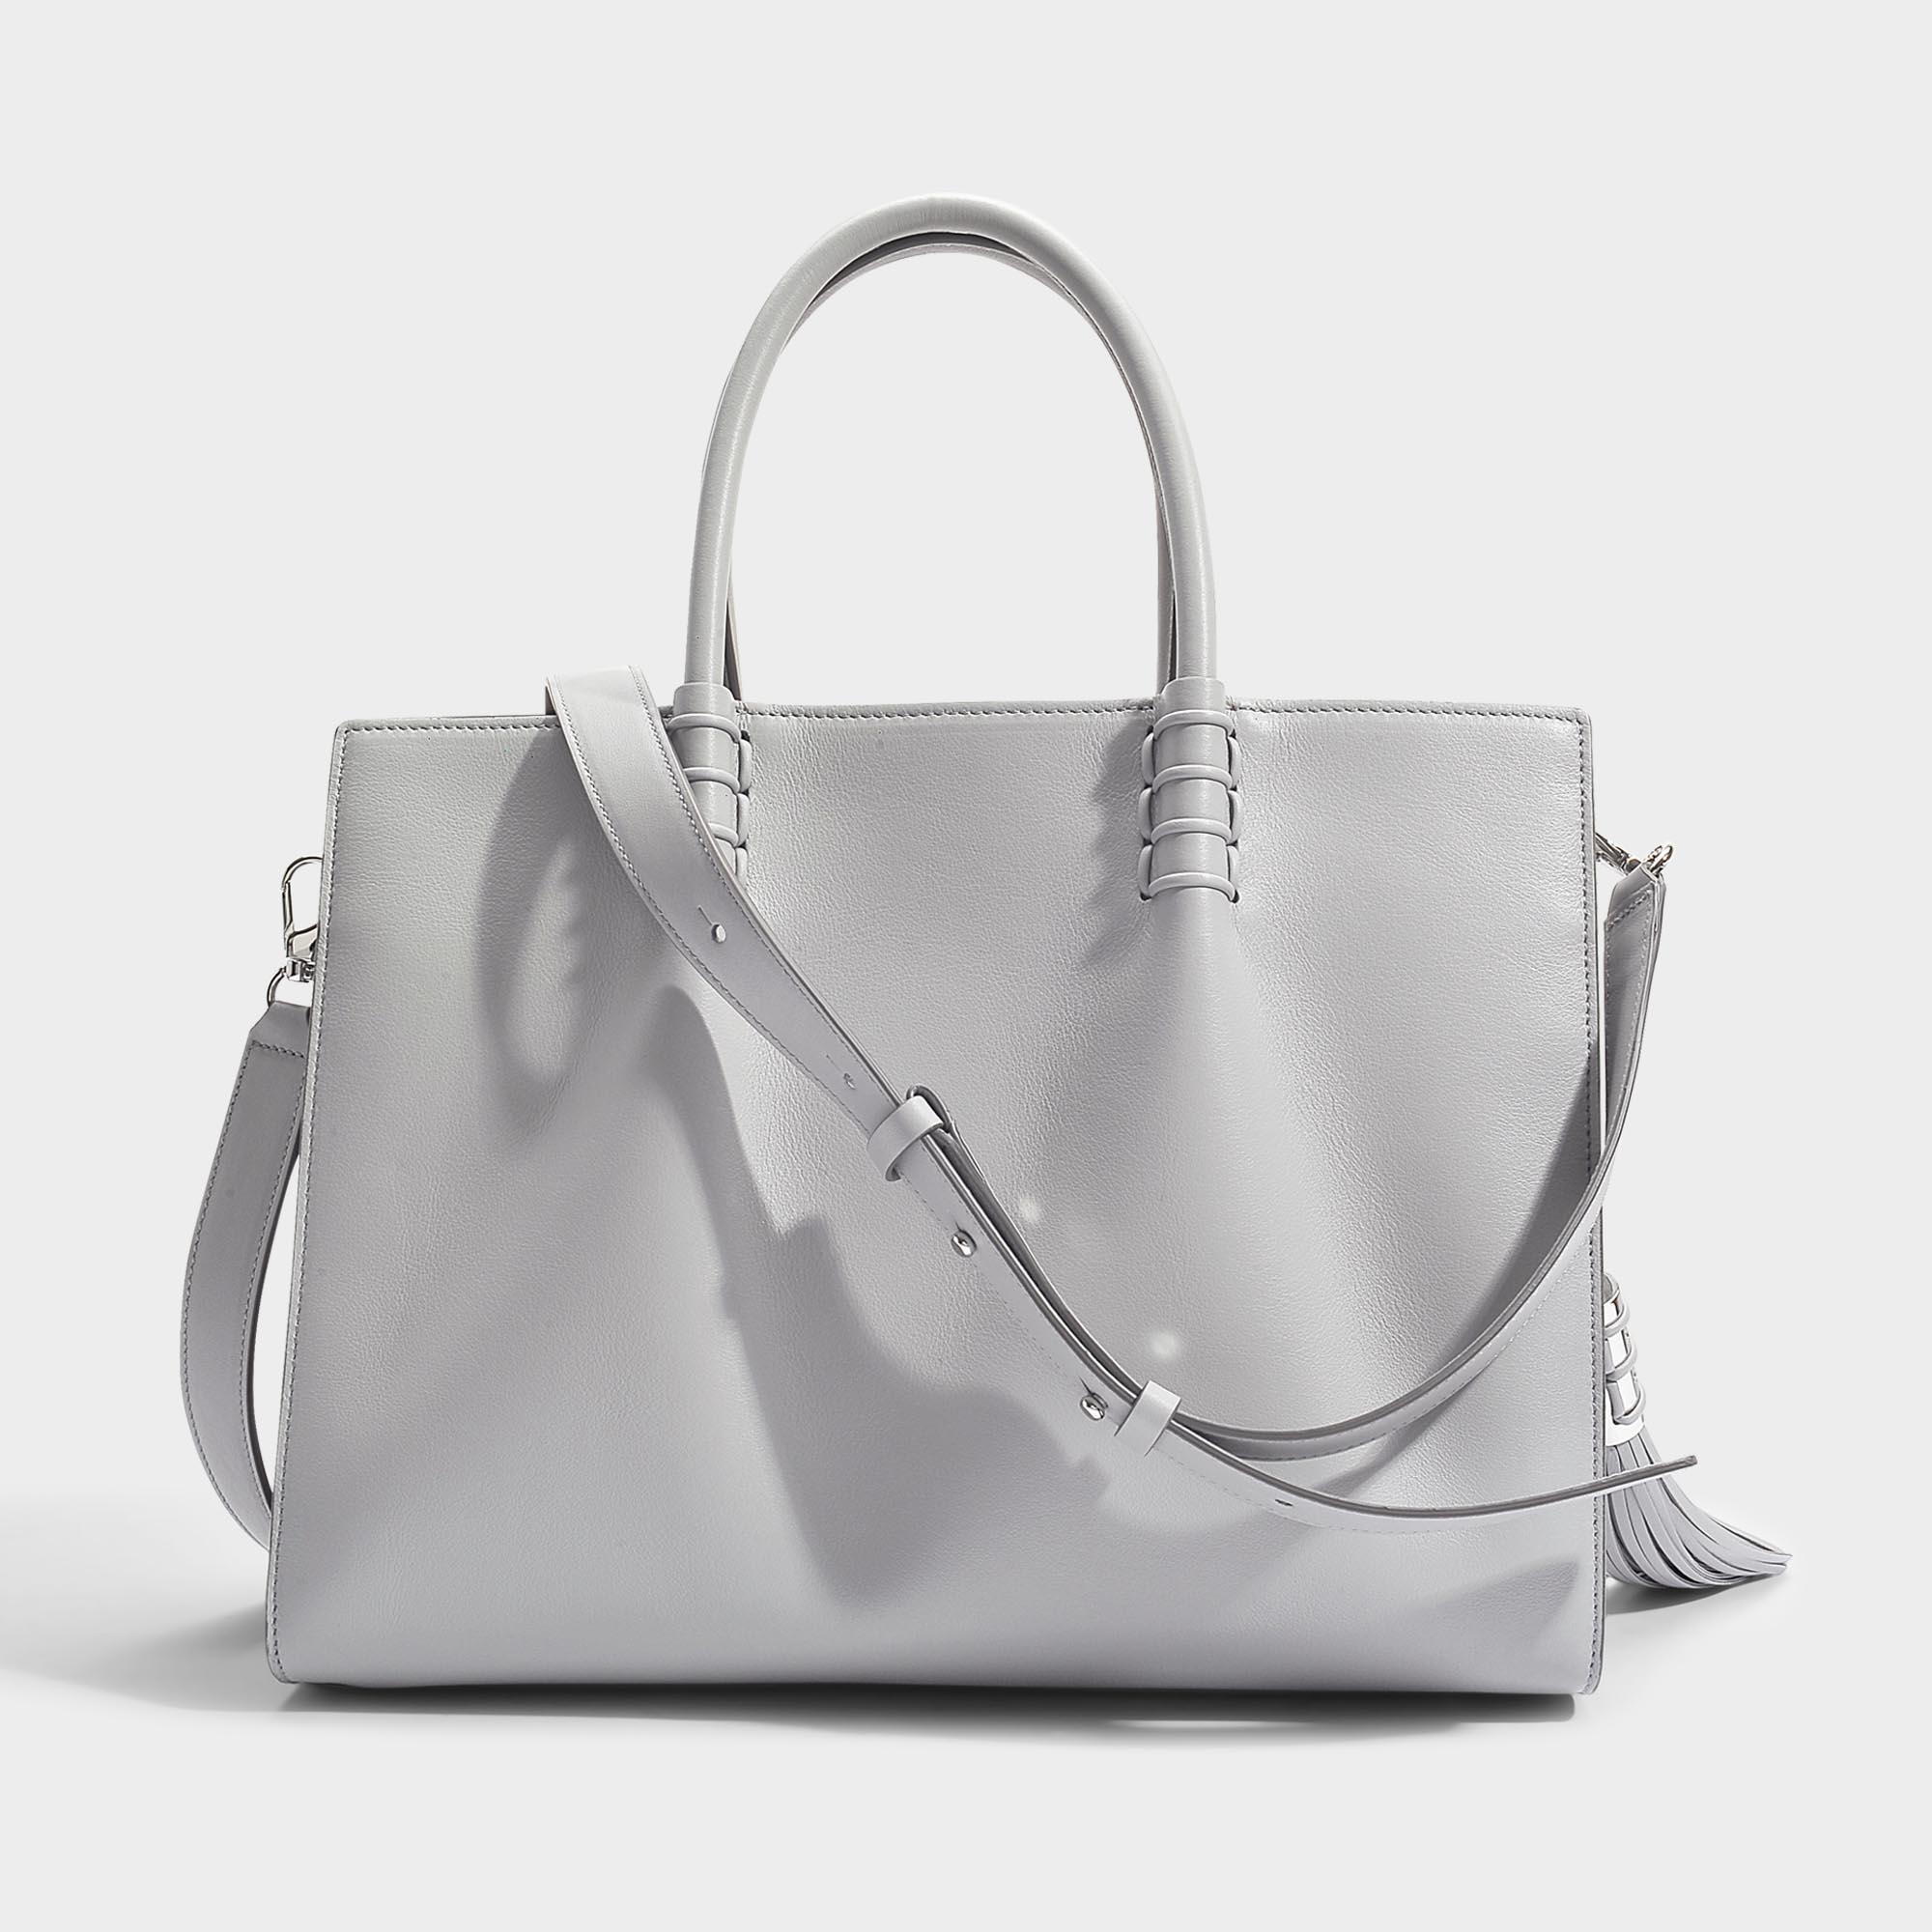 Pay With Paypal Cheap Price Outlet Low Shipping Fee Lady Moc Large Shopping Bag in Grey Calfskin Tod's Z89PwwNe